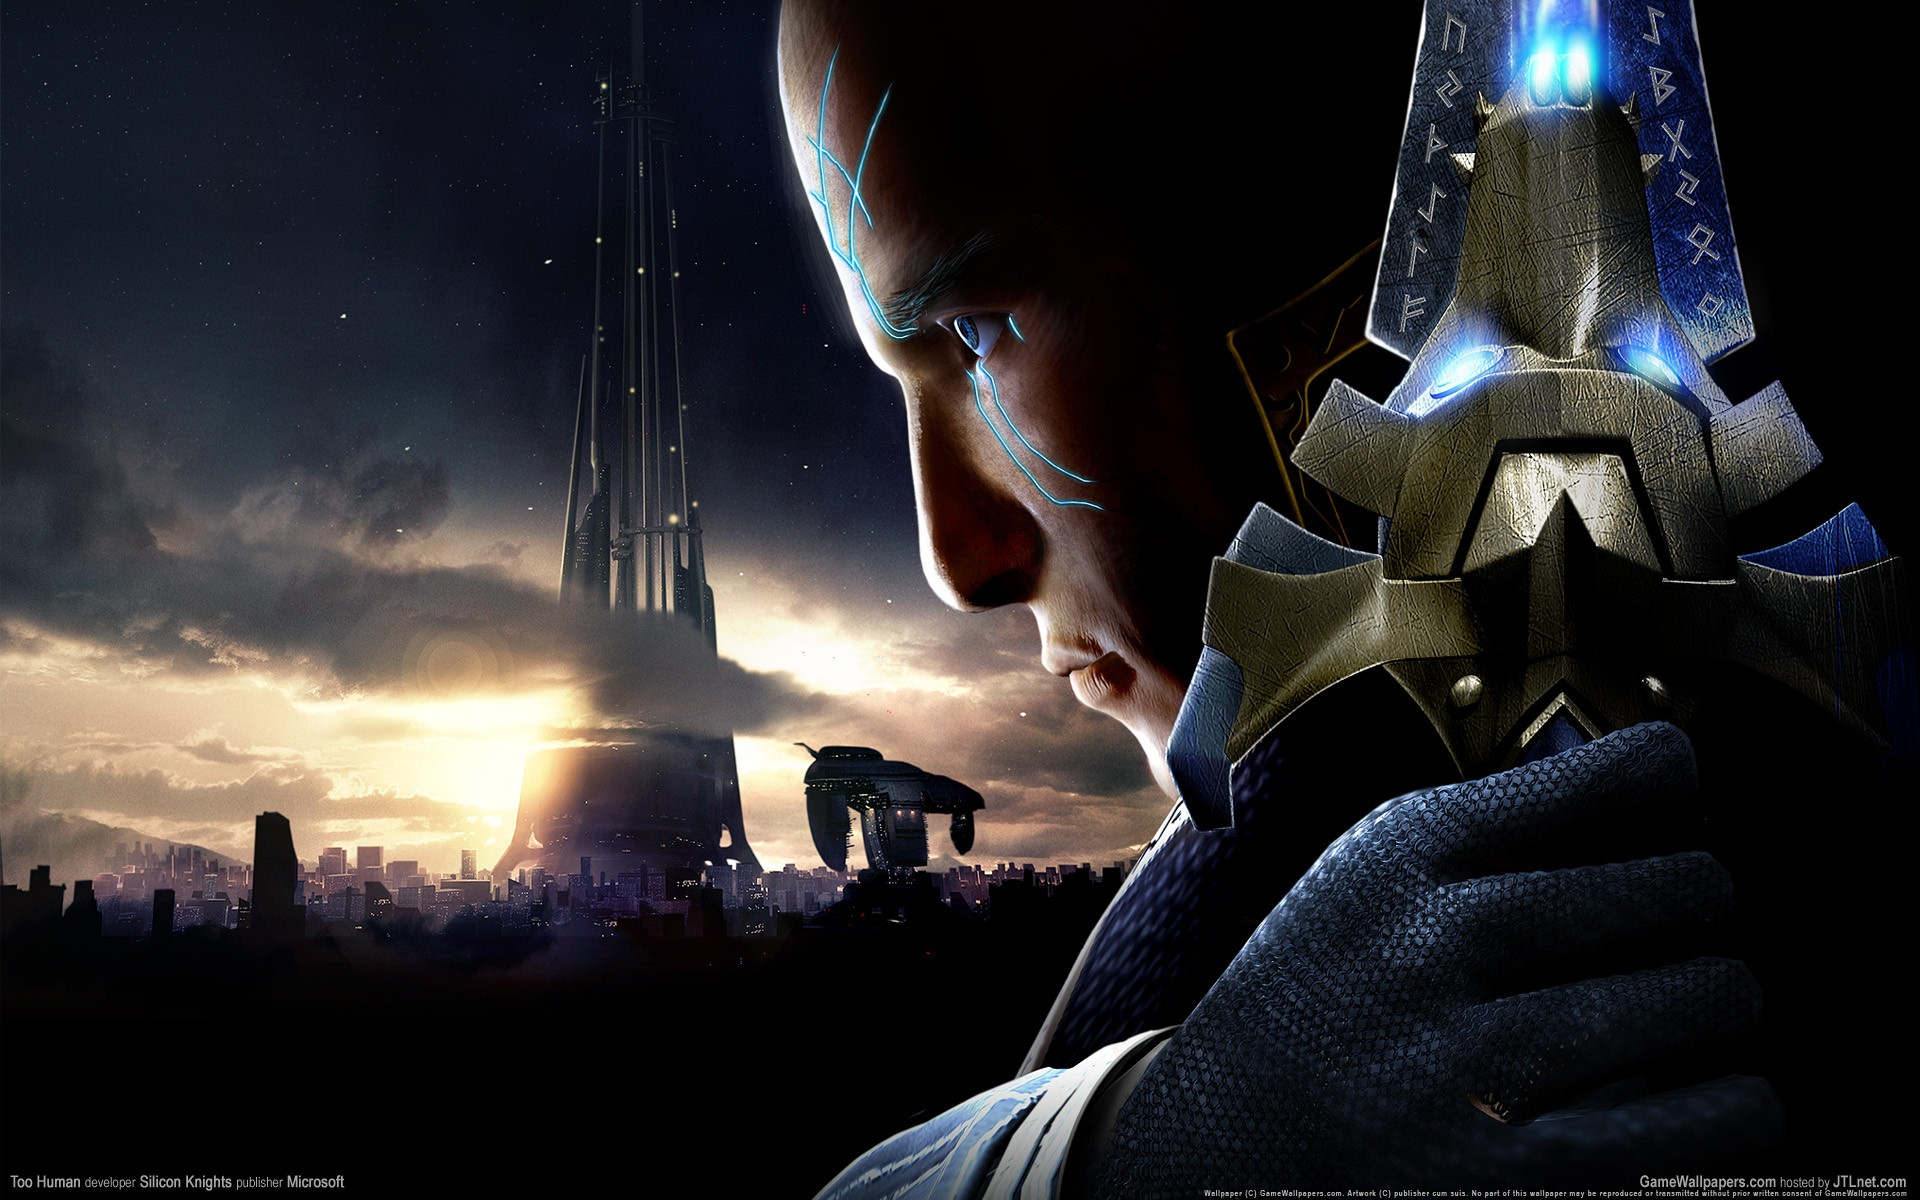 Top Cool Gamer Backgrounds Wallpaper Images for Pinterest 1920x1200